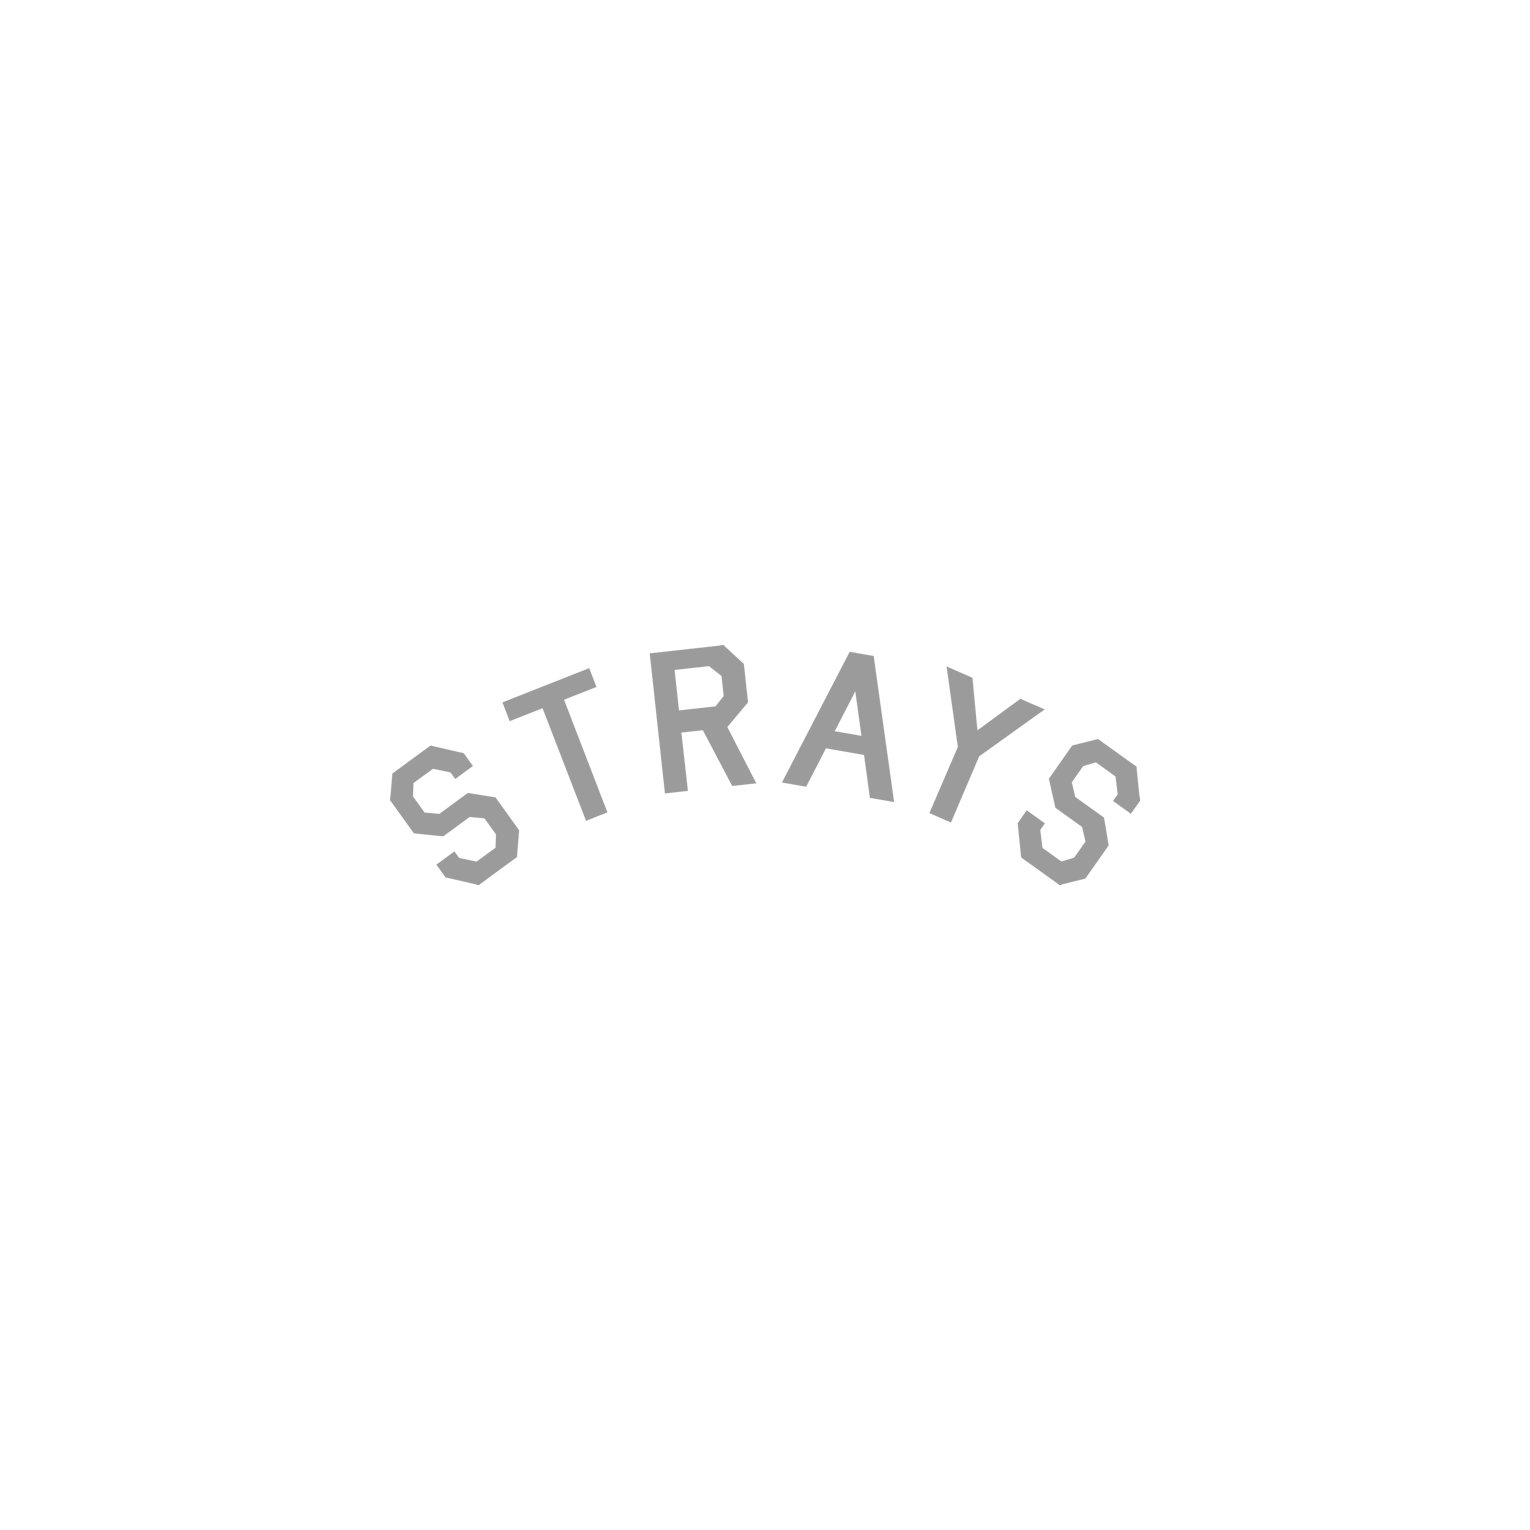 Straysfeat@3x.png